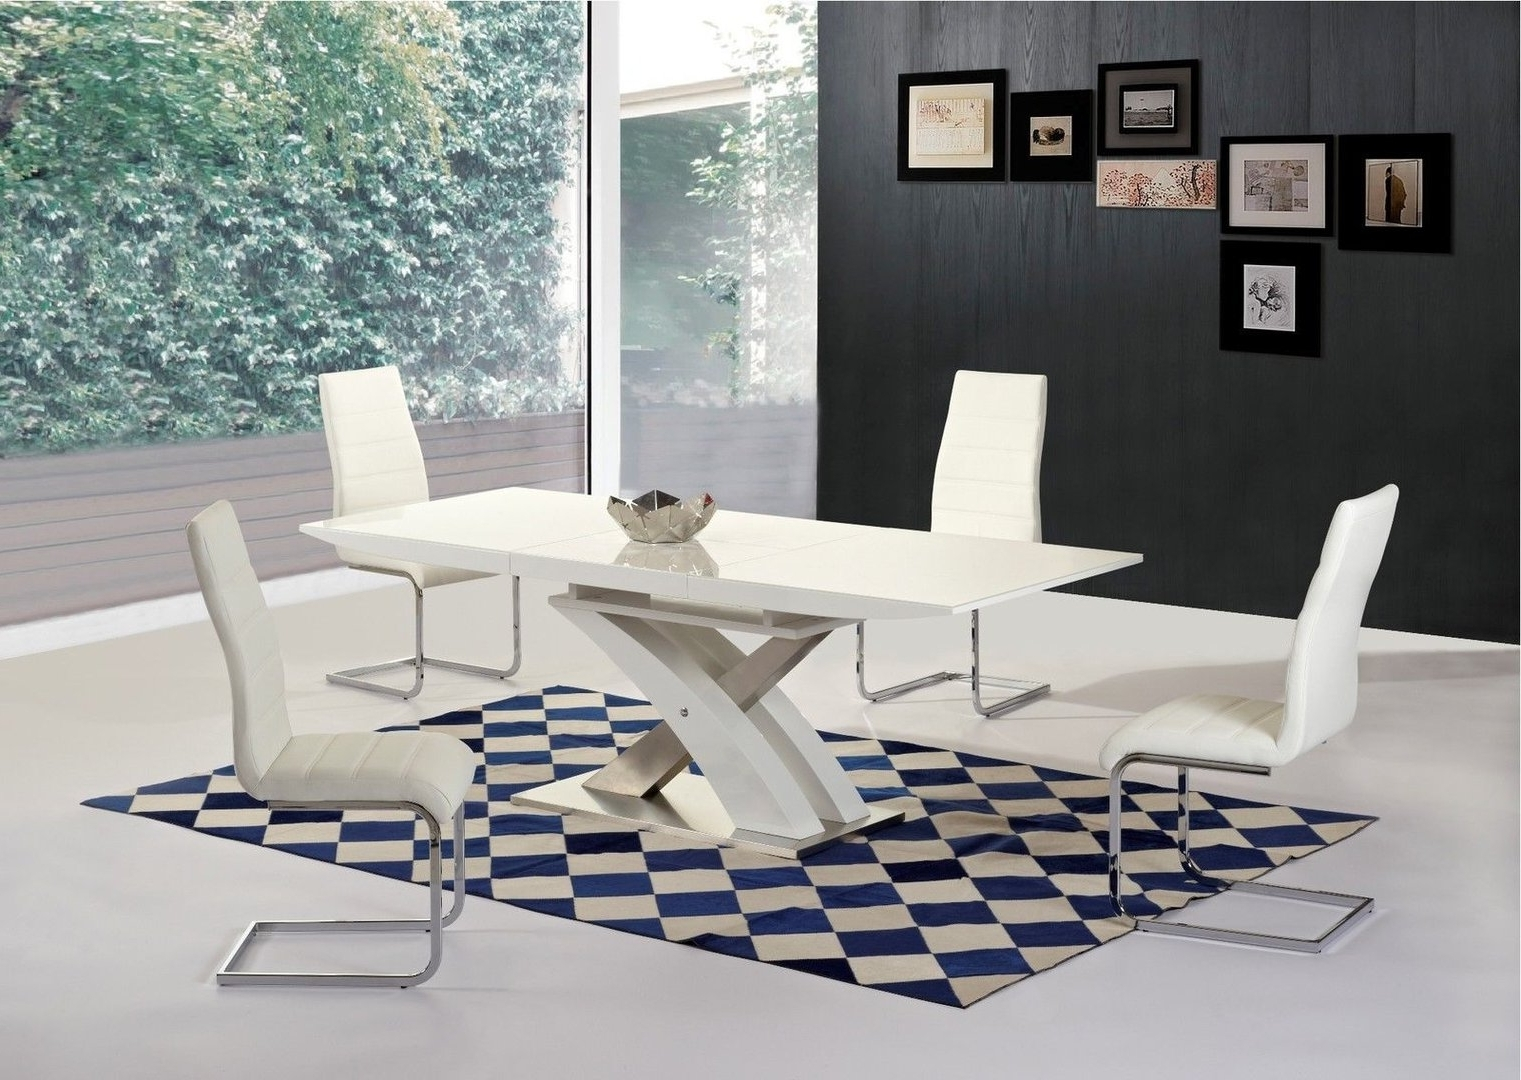 White High Gloss / Glass Extending Dining Table & 6 Chairs Within Recent Glass Dining Tables With 6 Chairs (View 20 of 25)